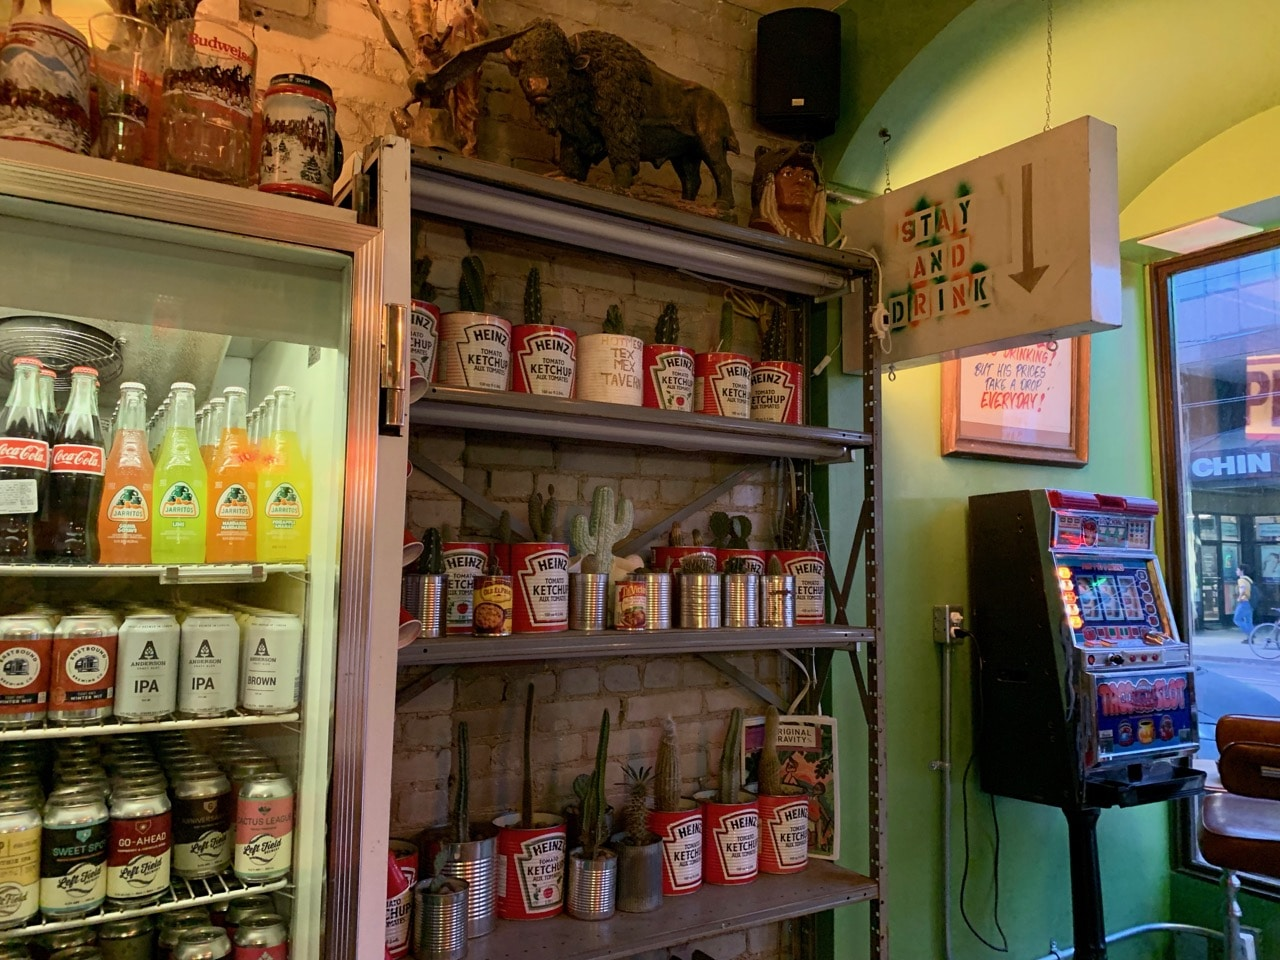 A slot machine and choir of cactus plants in Heinz ketchup containers.